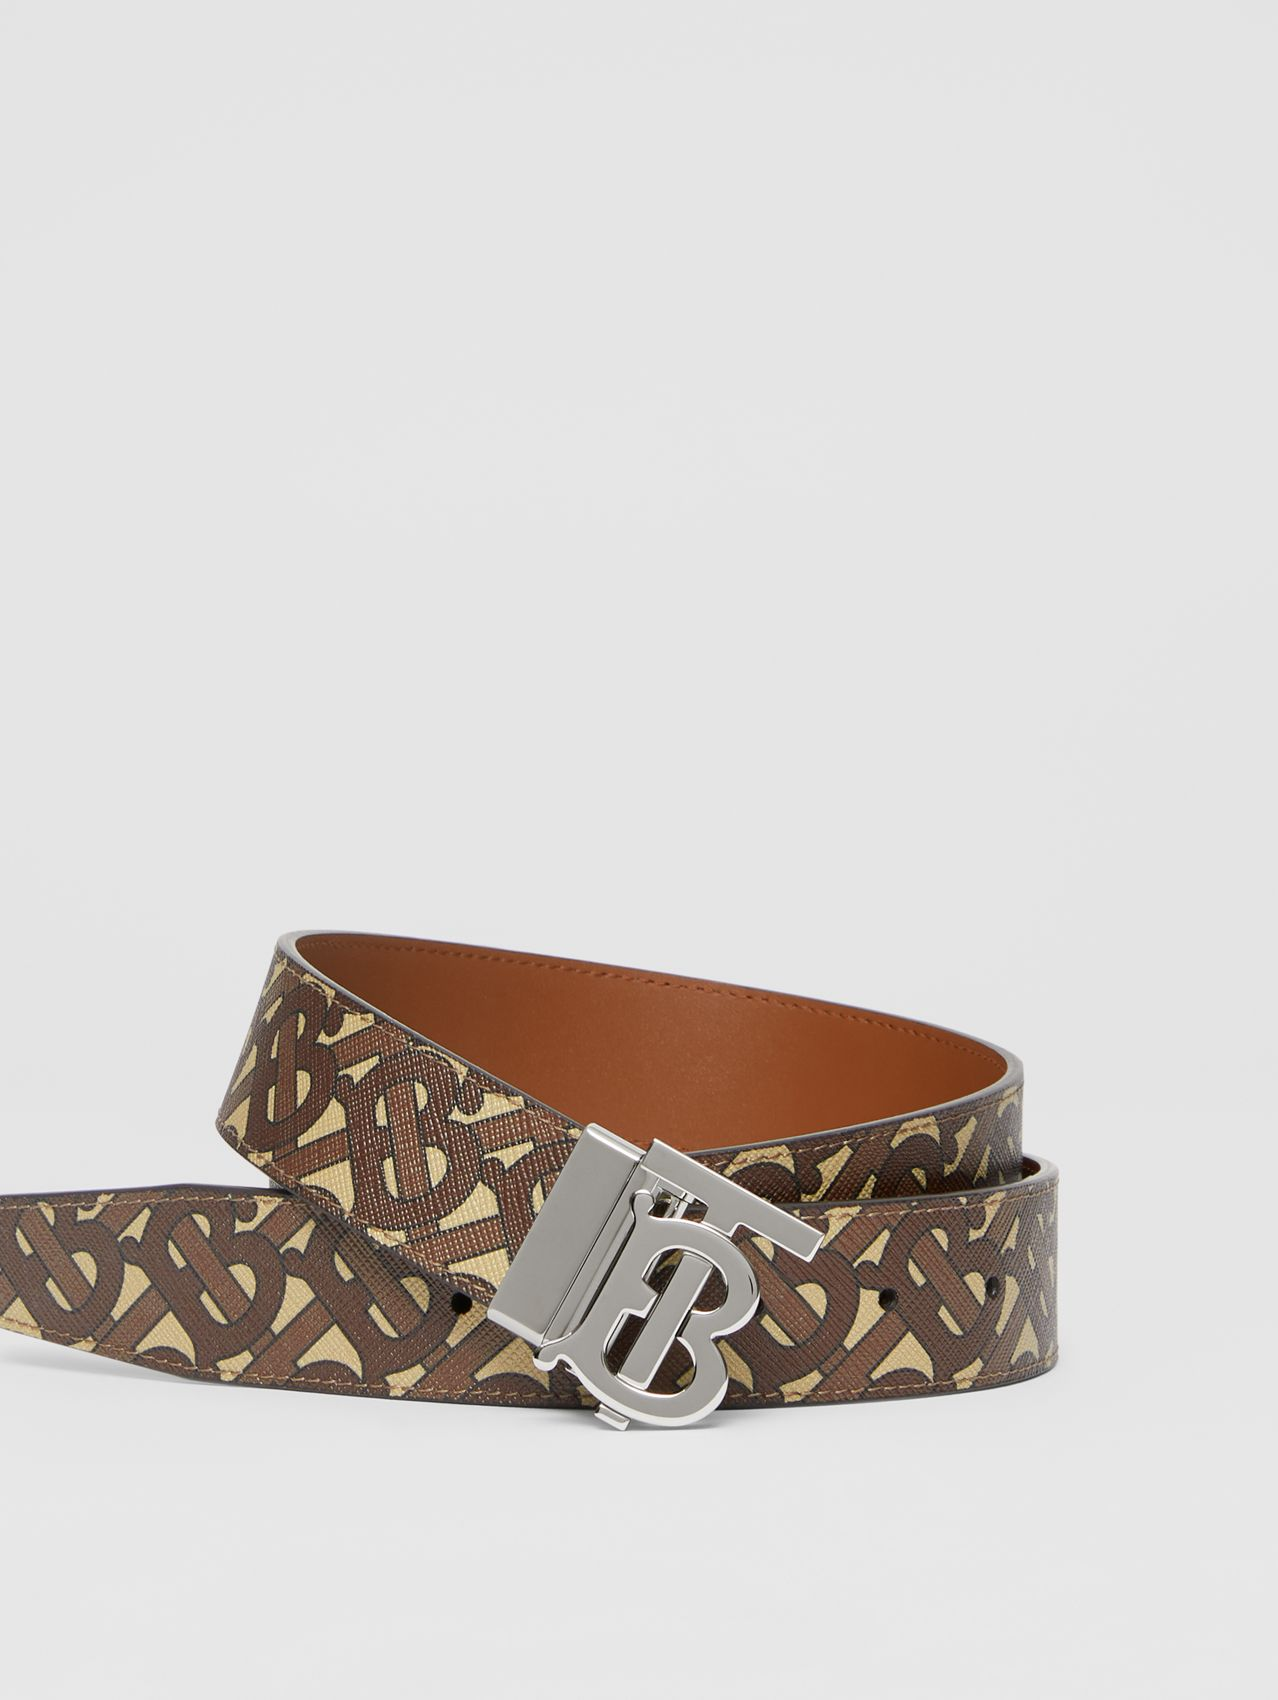 Reversible Monogram Motif E-canvas and Leather Belt in Bridle Brown/tan